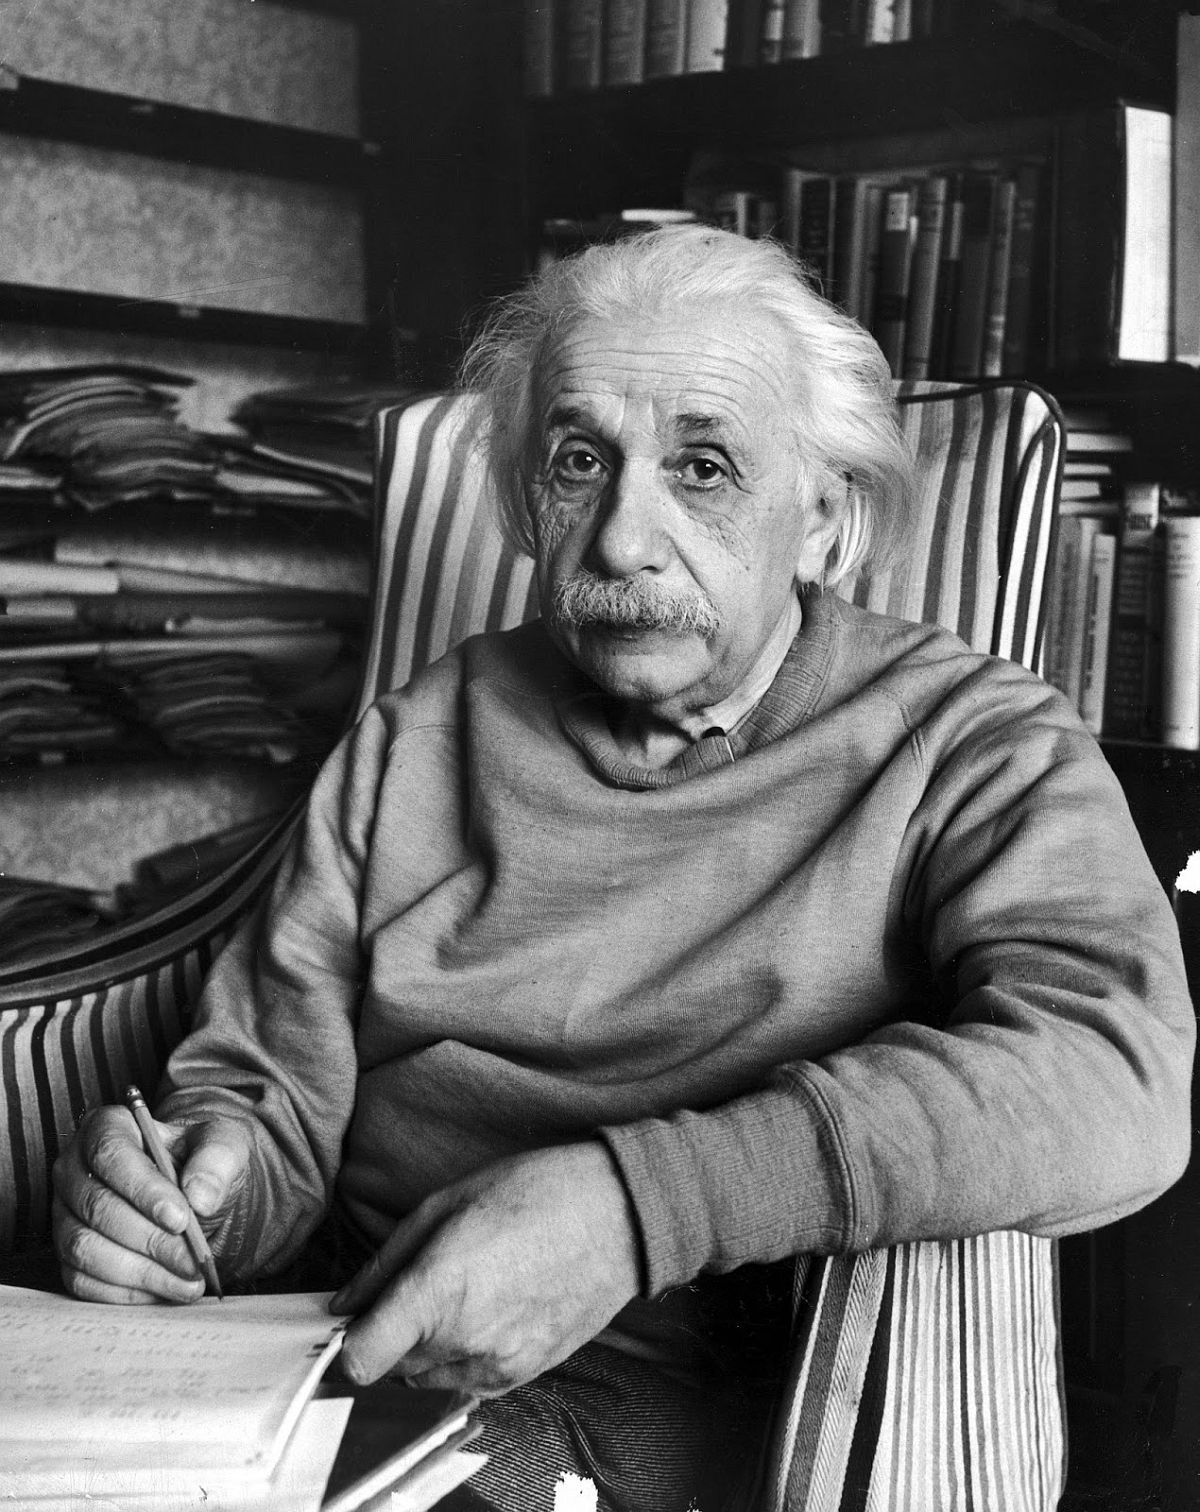 Famed scientist Albert Einstein in his study at home, 1948. (Alfred Eisenstaedt—The LIFE Picture Collection/Getty Images)